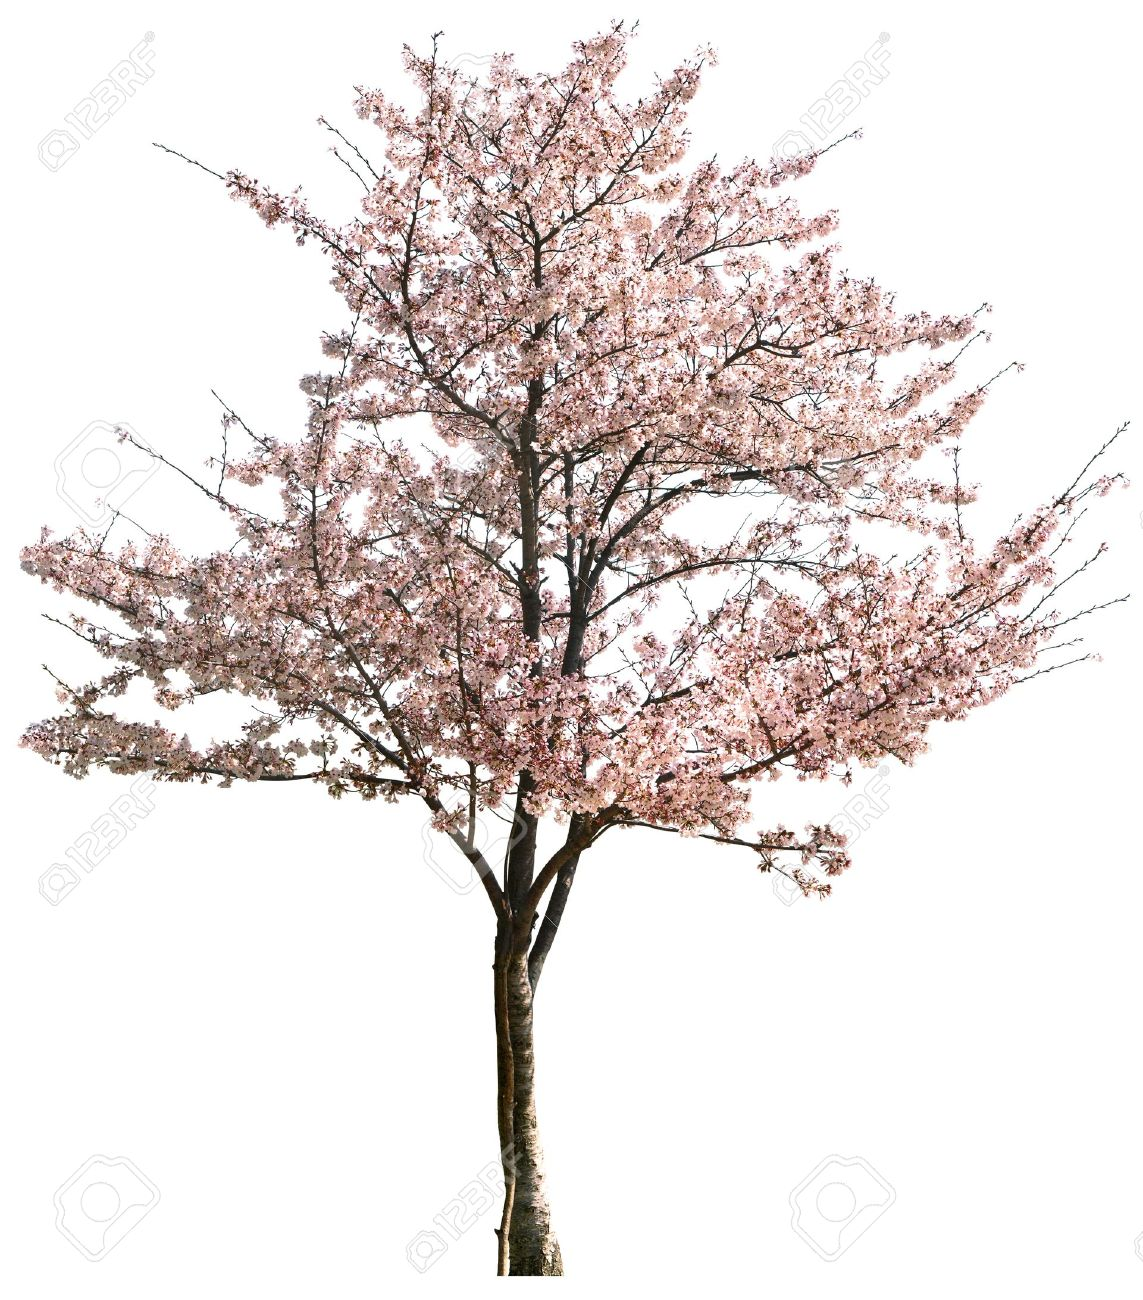 Pink Japanese apricot flower isolated on white in winter Stock Photo - 9653351